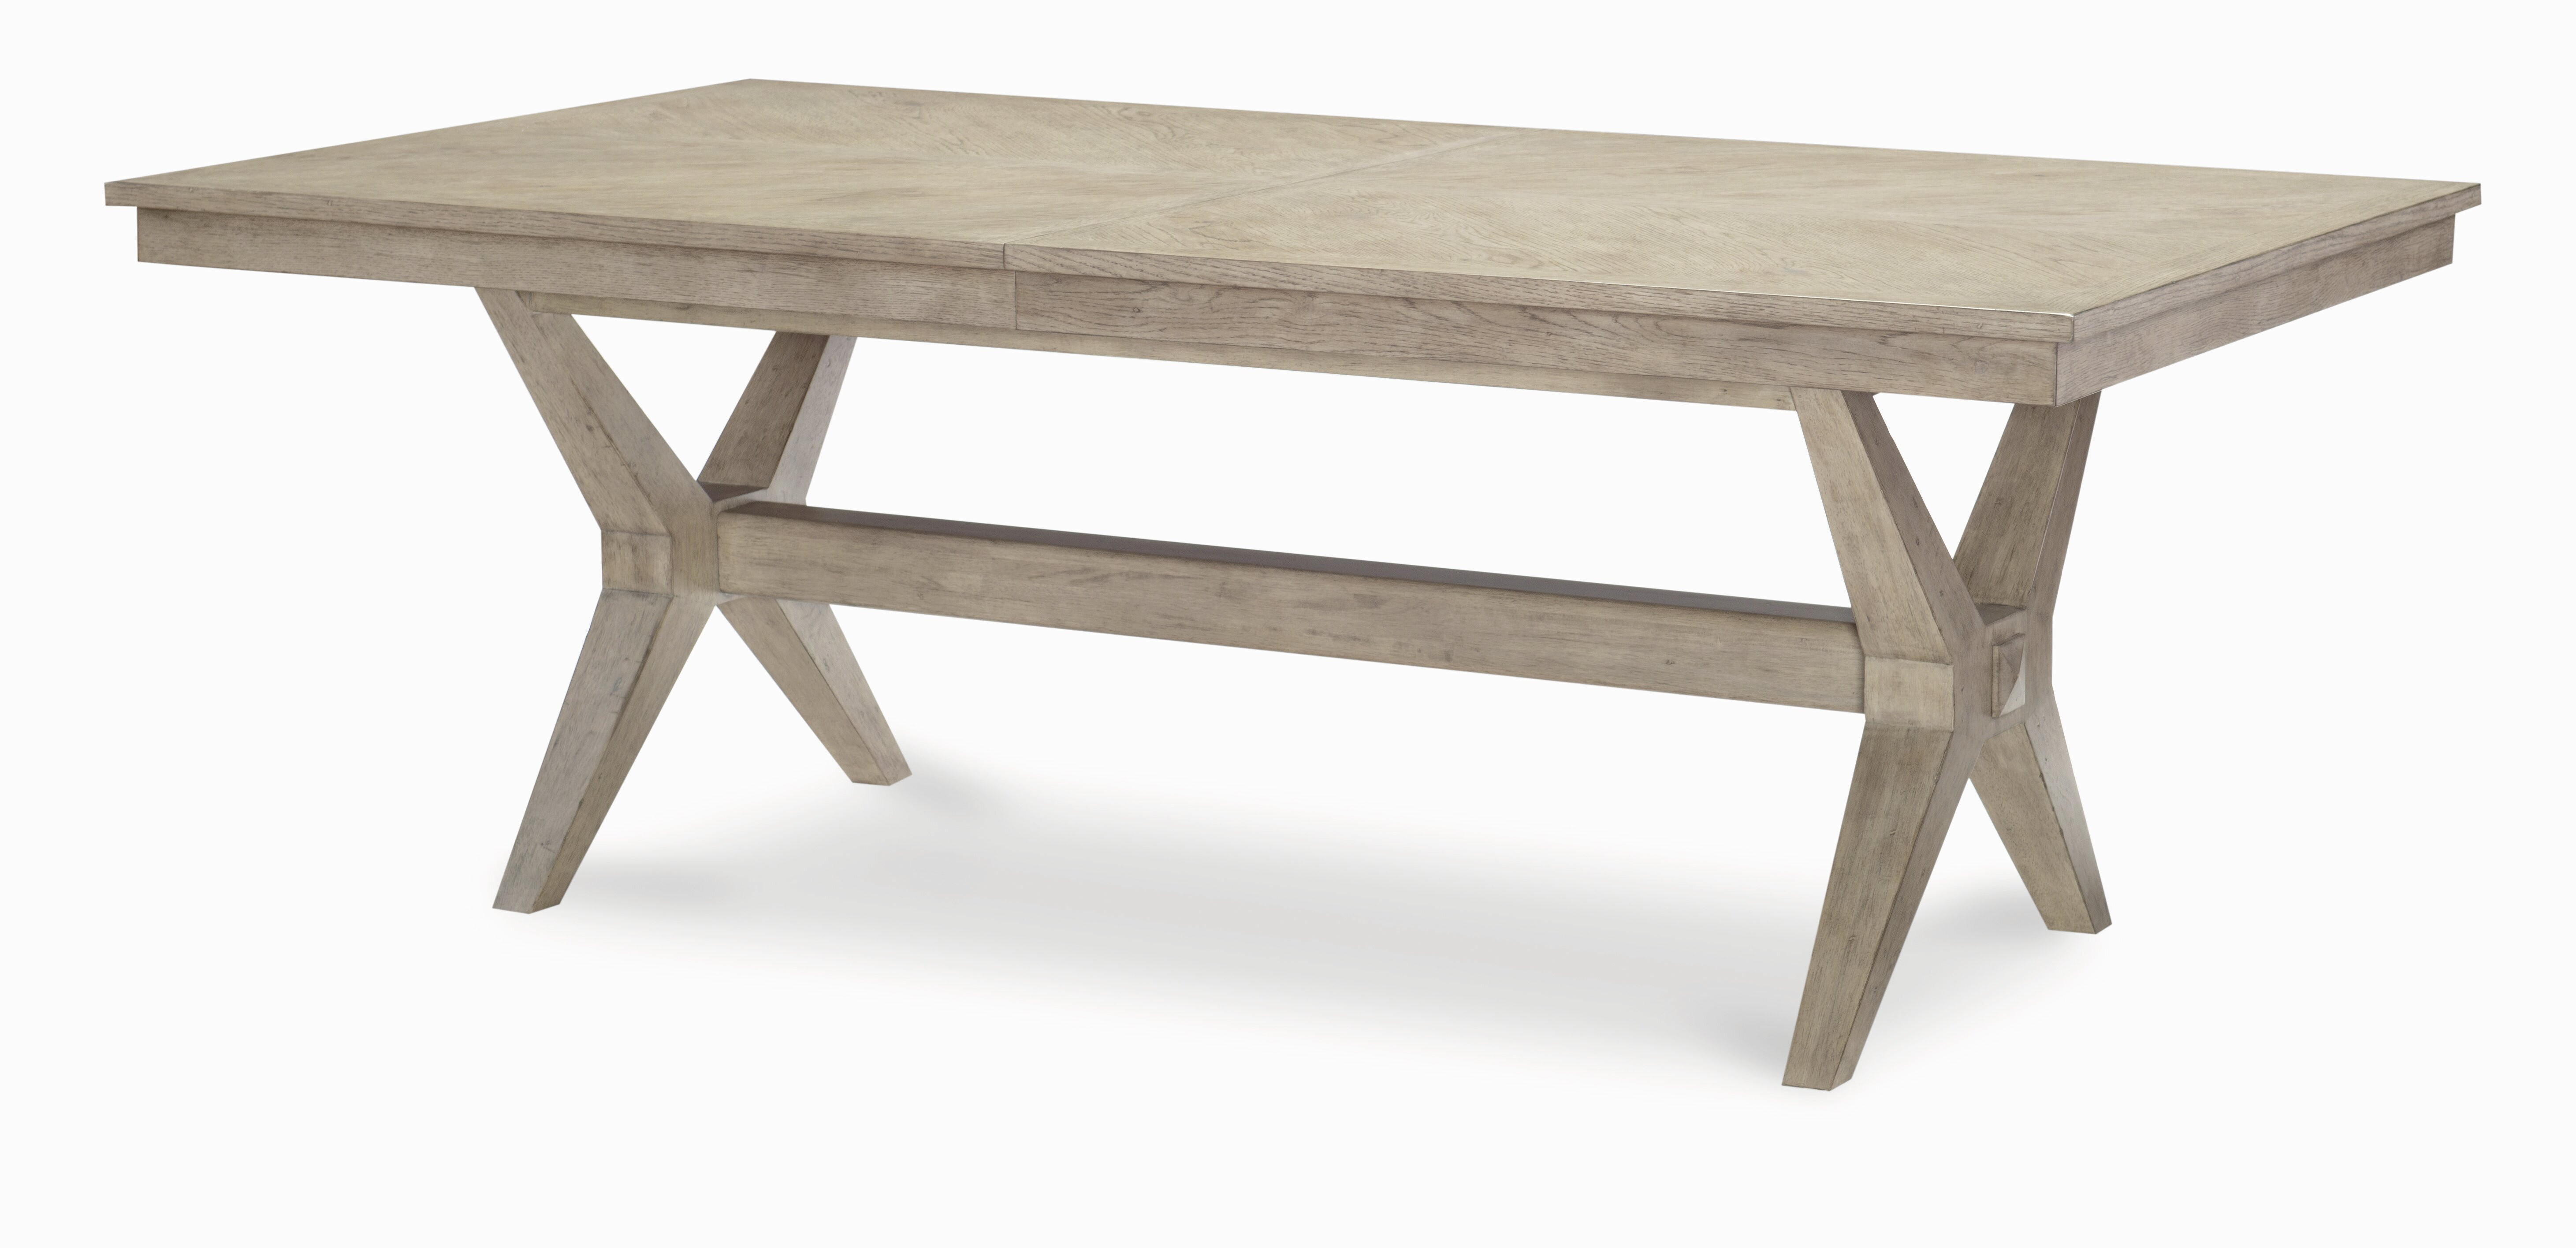 Amina complete trestle dining table reviews joss main